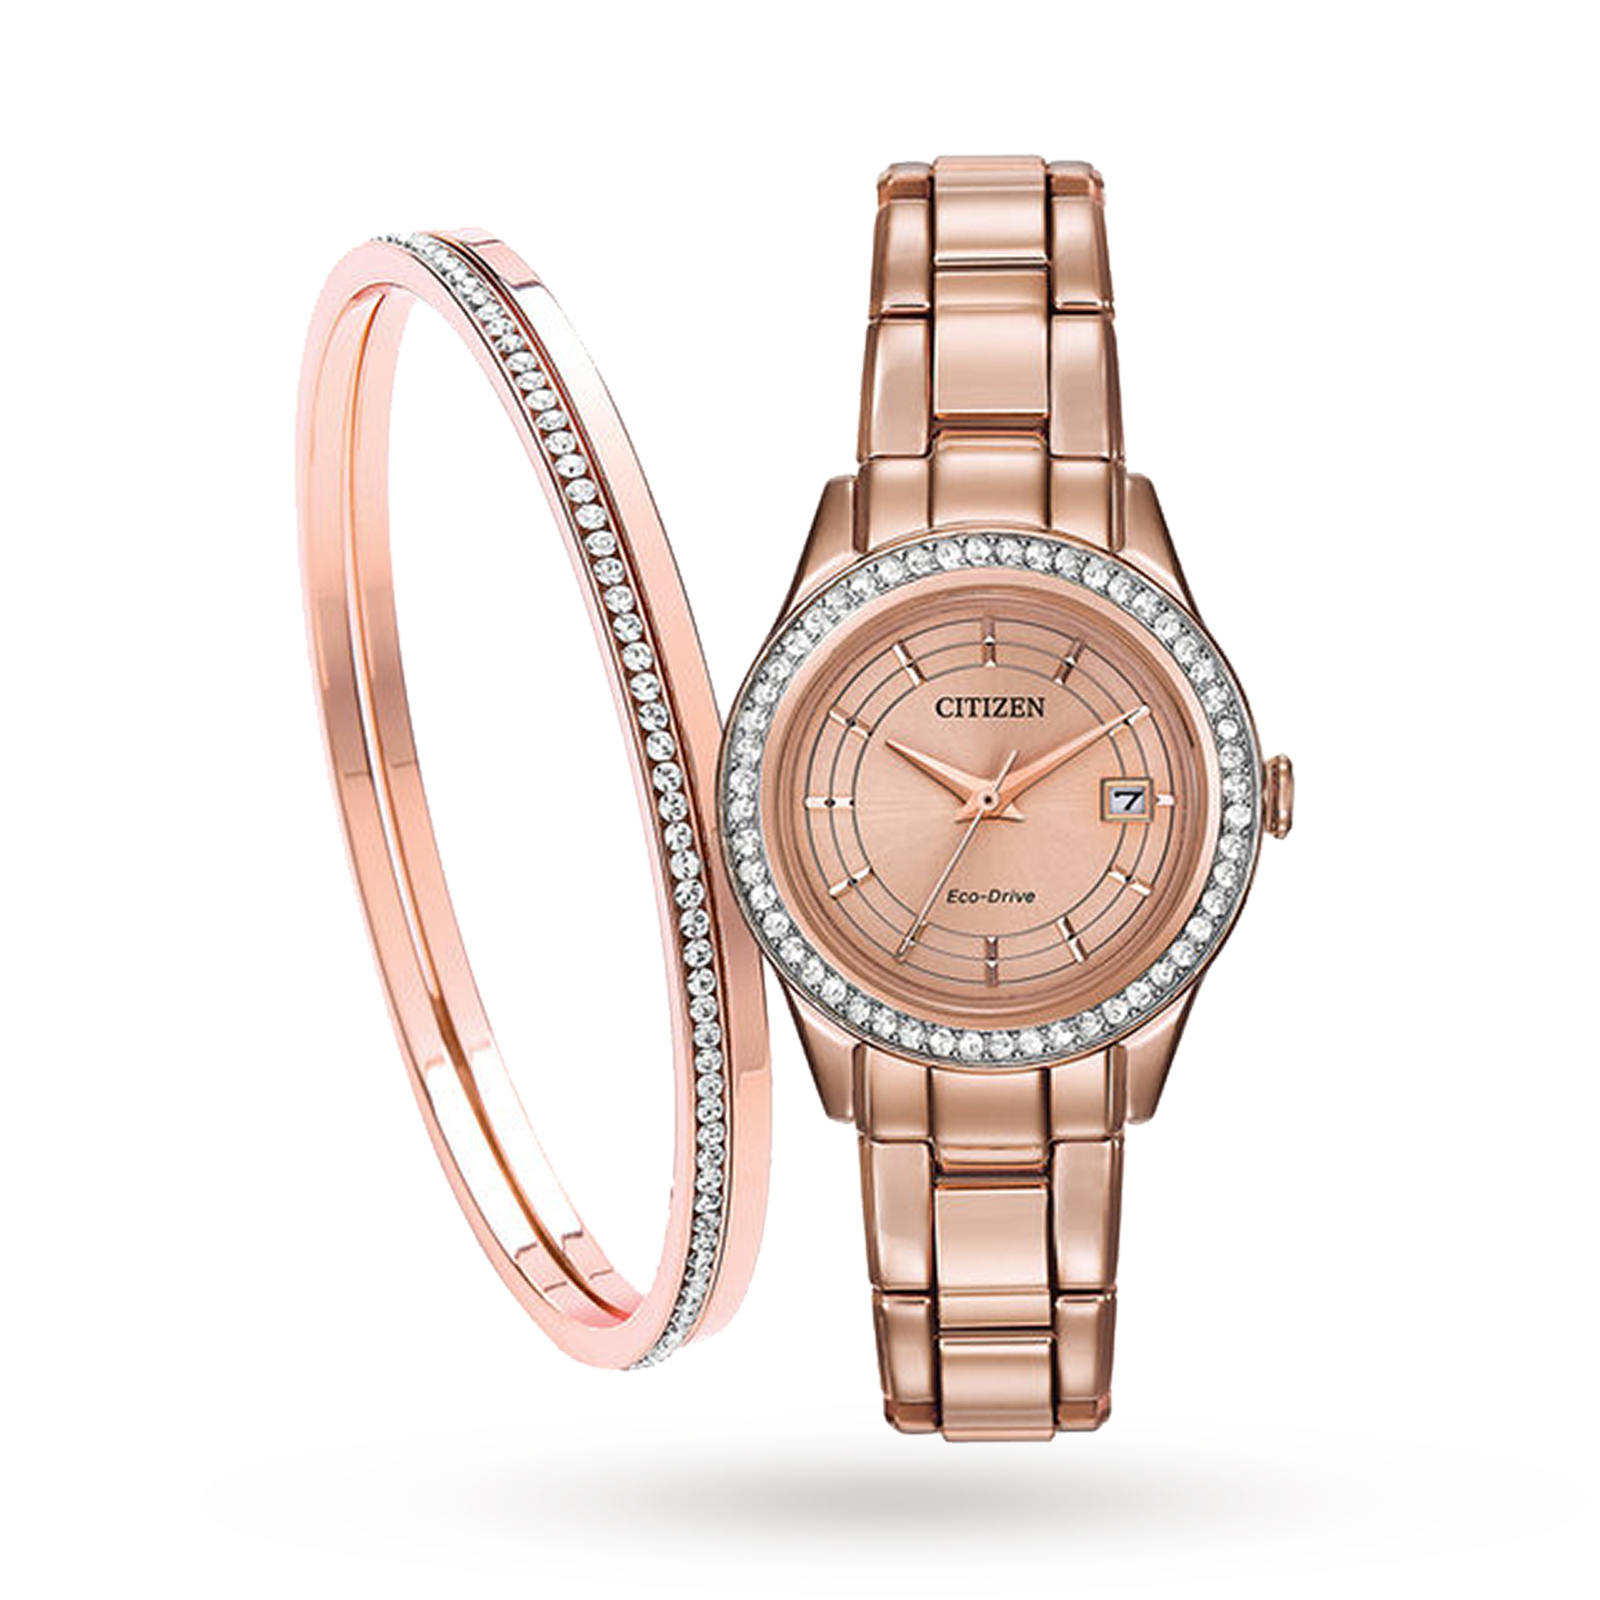 Citizen Ladies' Silhouette Crystal Eco-Drive Watch - Exclusive